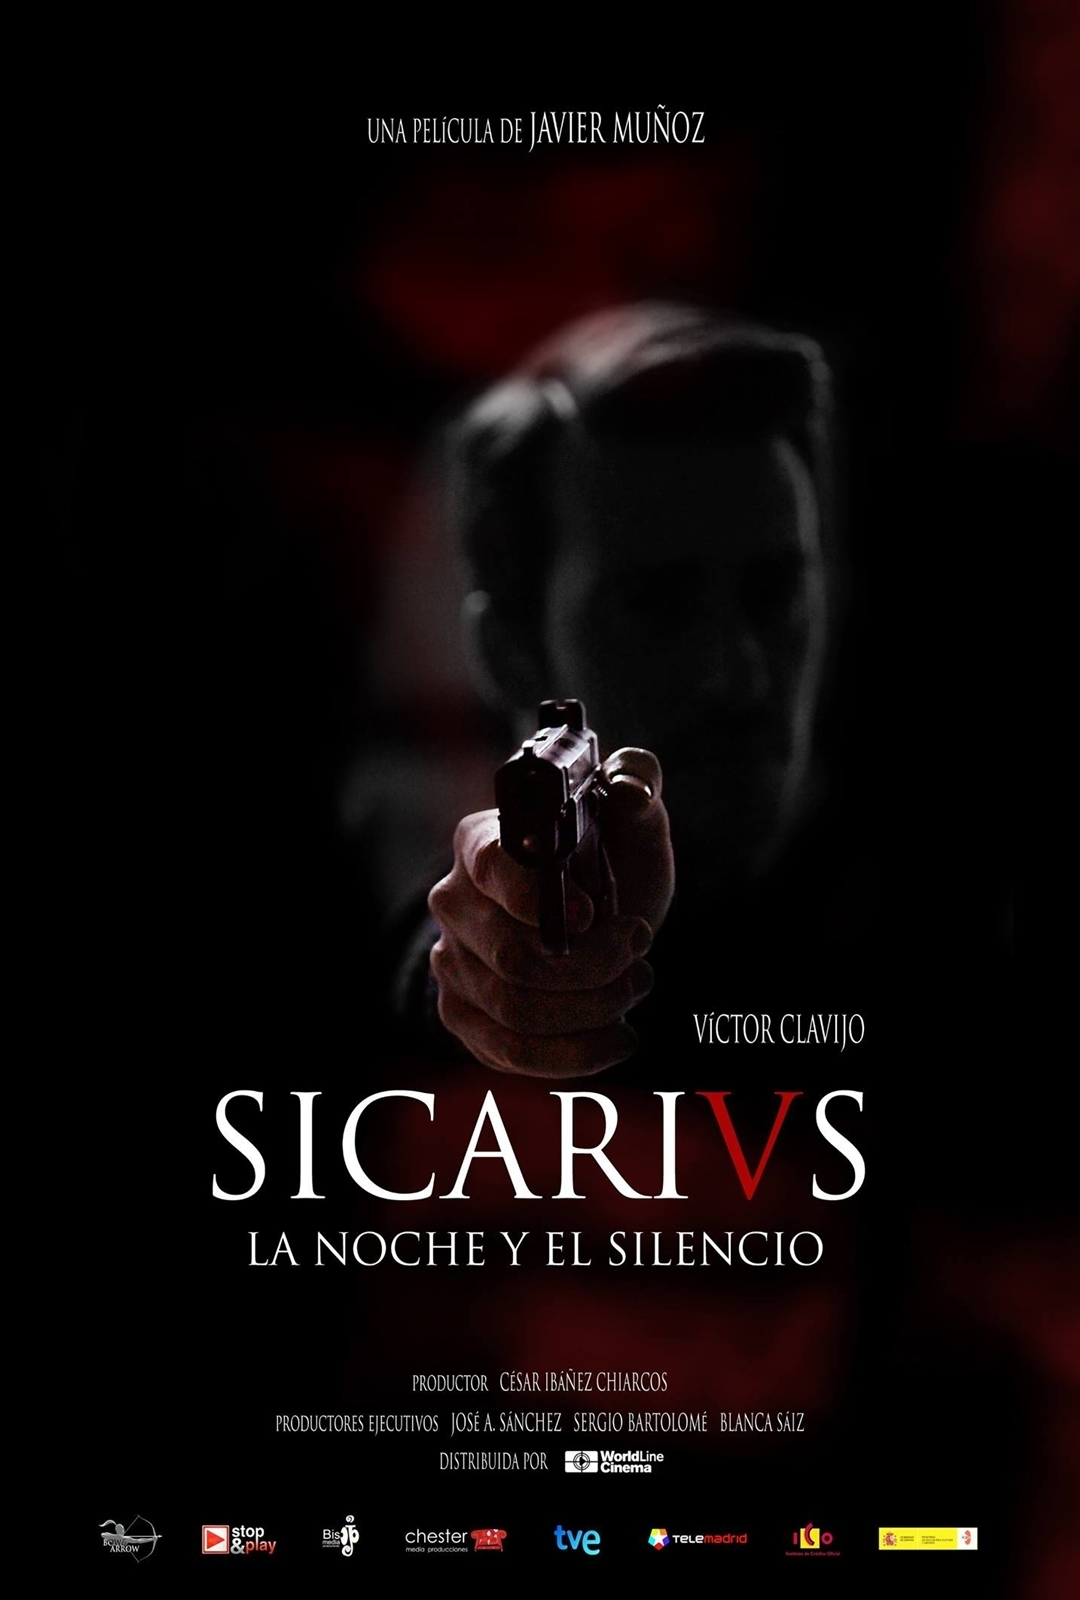 Sicarivs The Night and the Silence